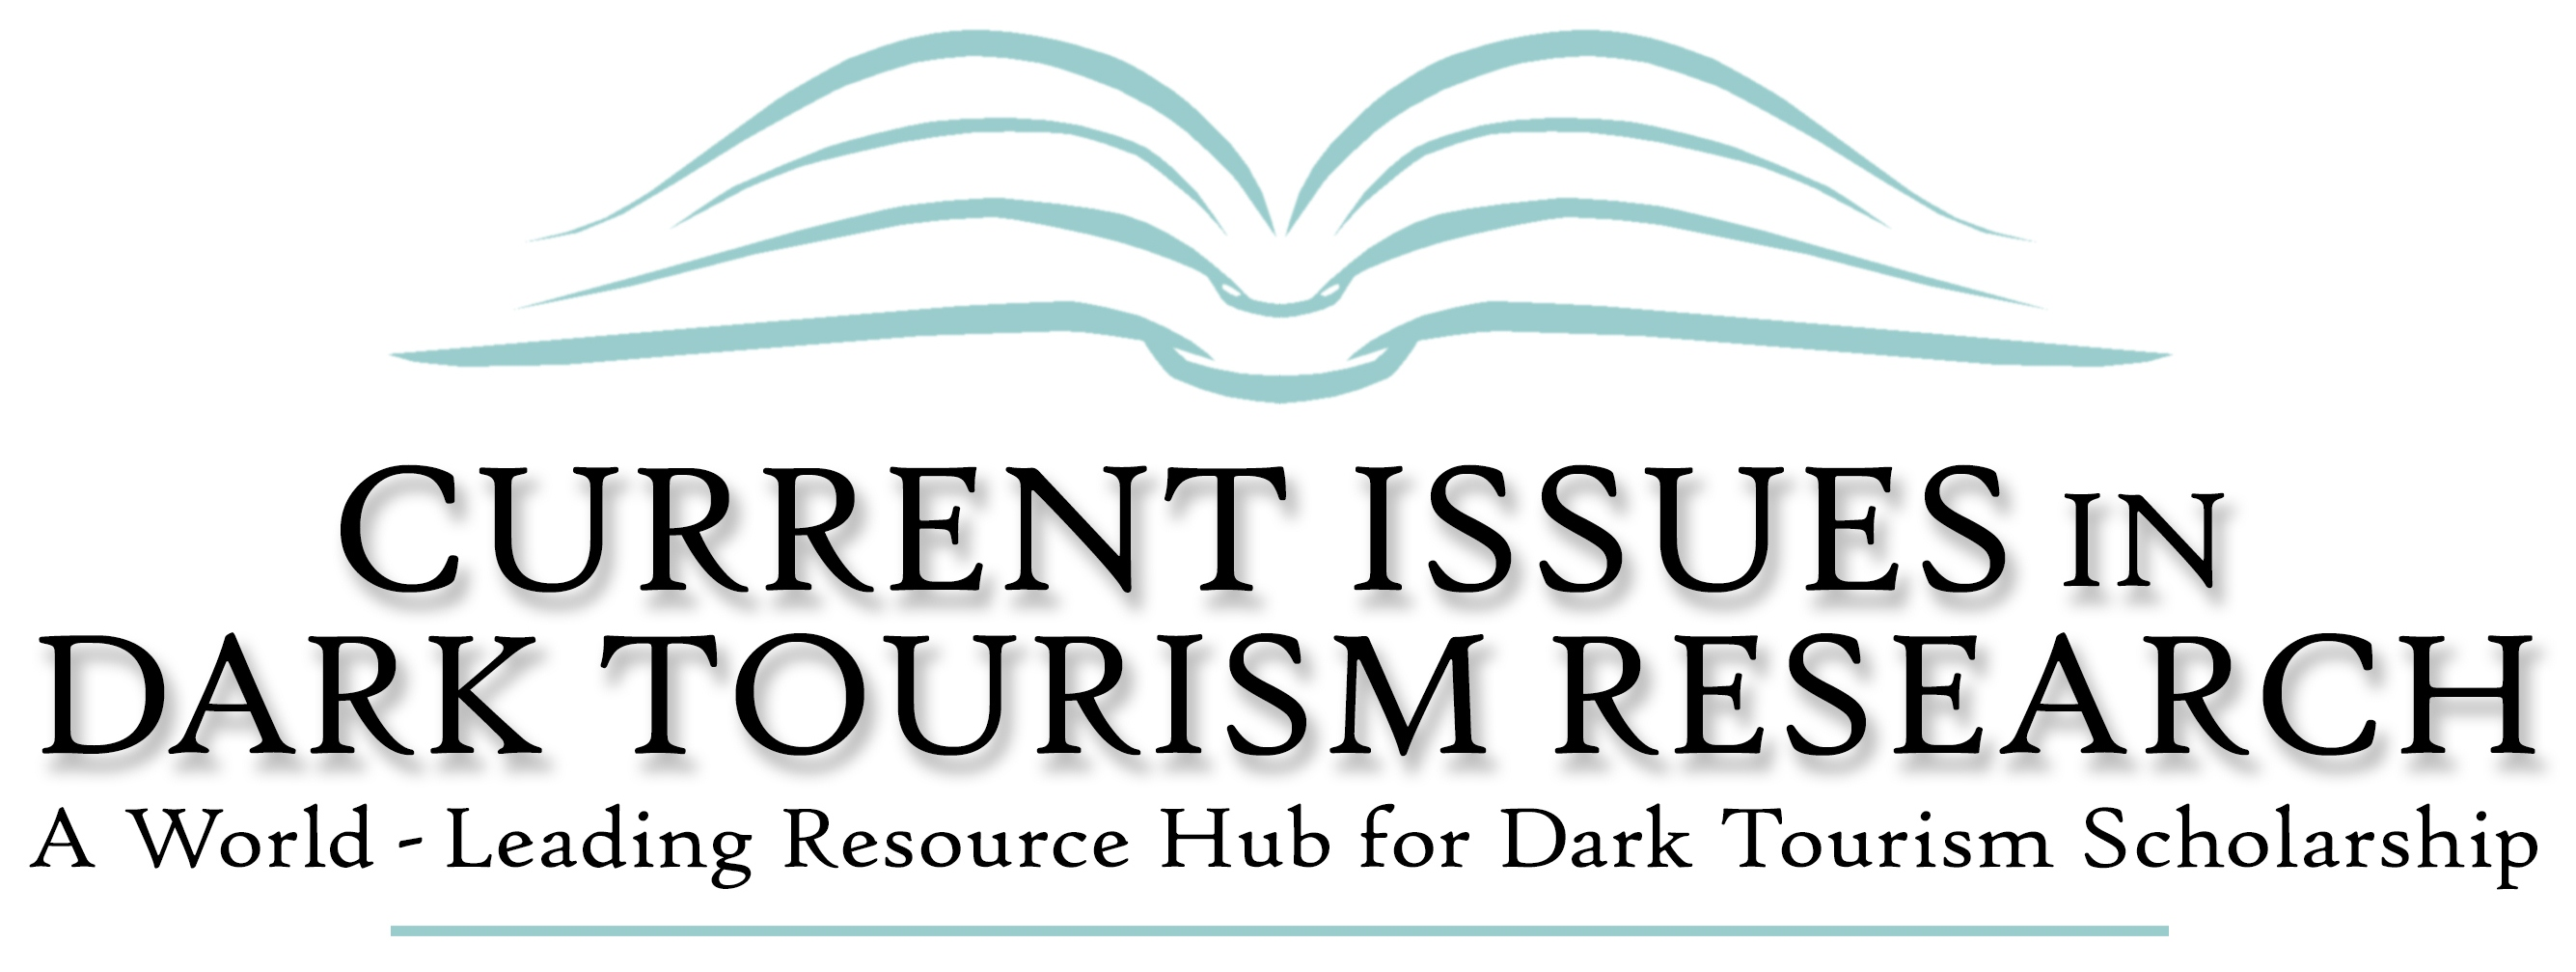 """dark tourism essay A large amount of tourism literature deals with the marketing and consumption of """"pleasant diversions in pleasant places"""" (strange & kempa 2003, p386), but a."""